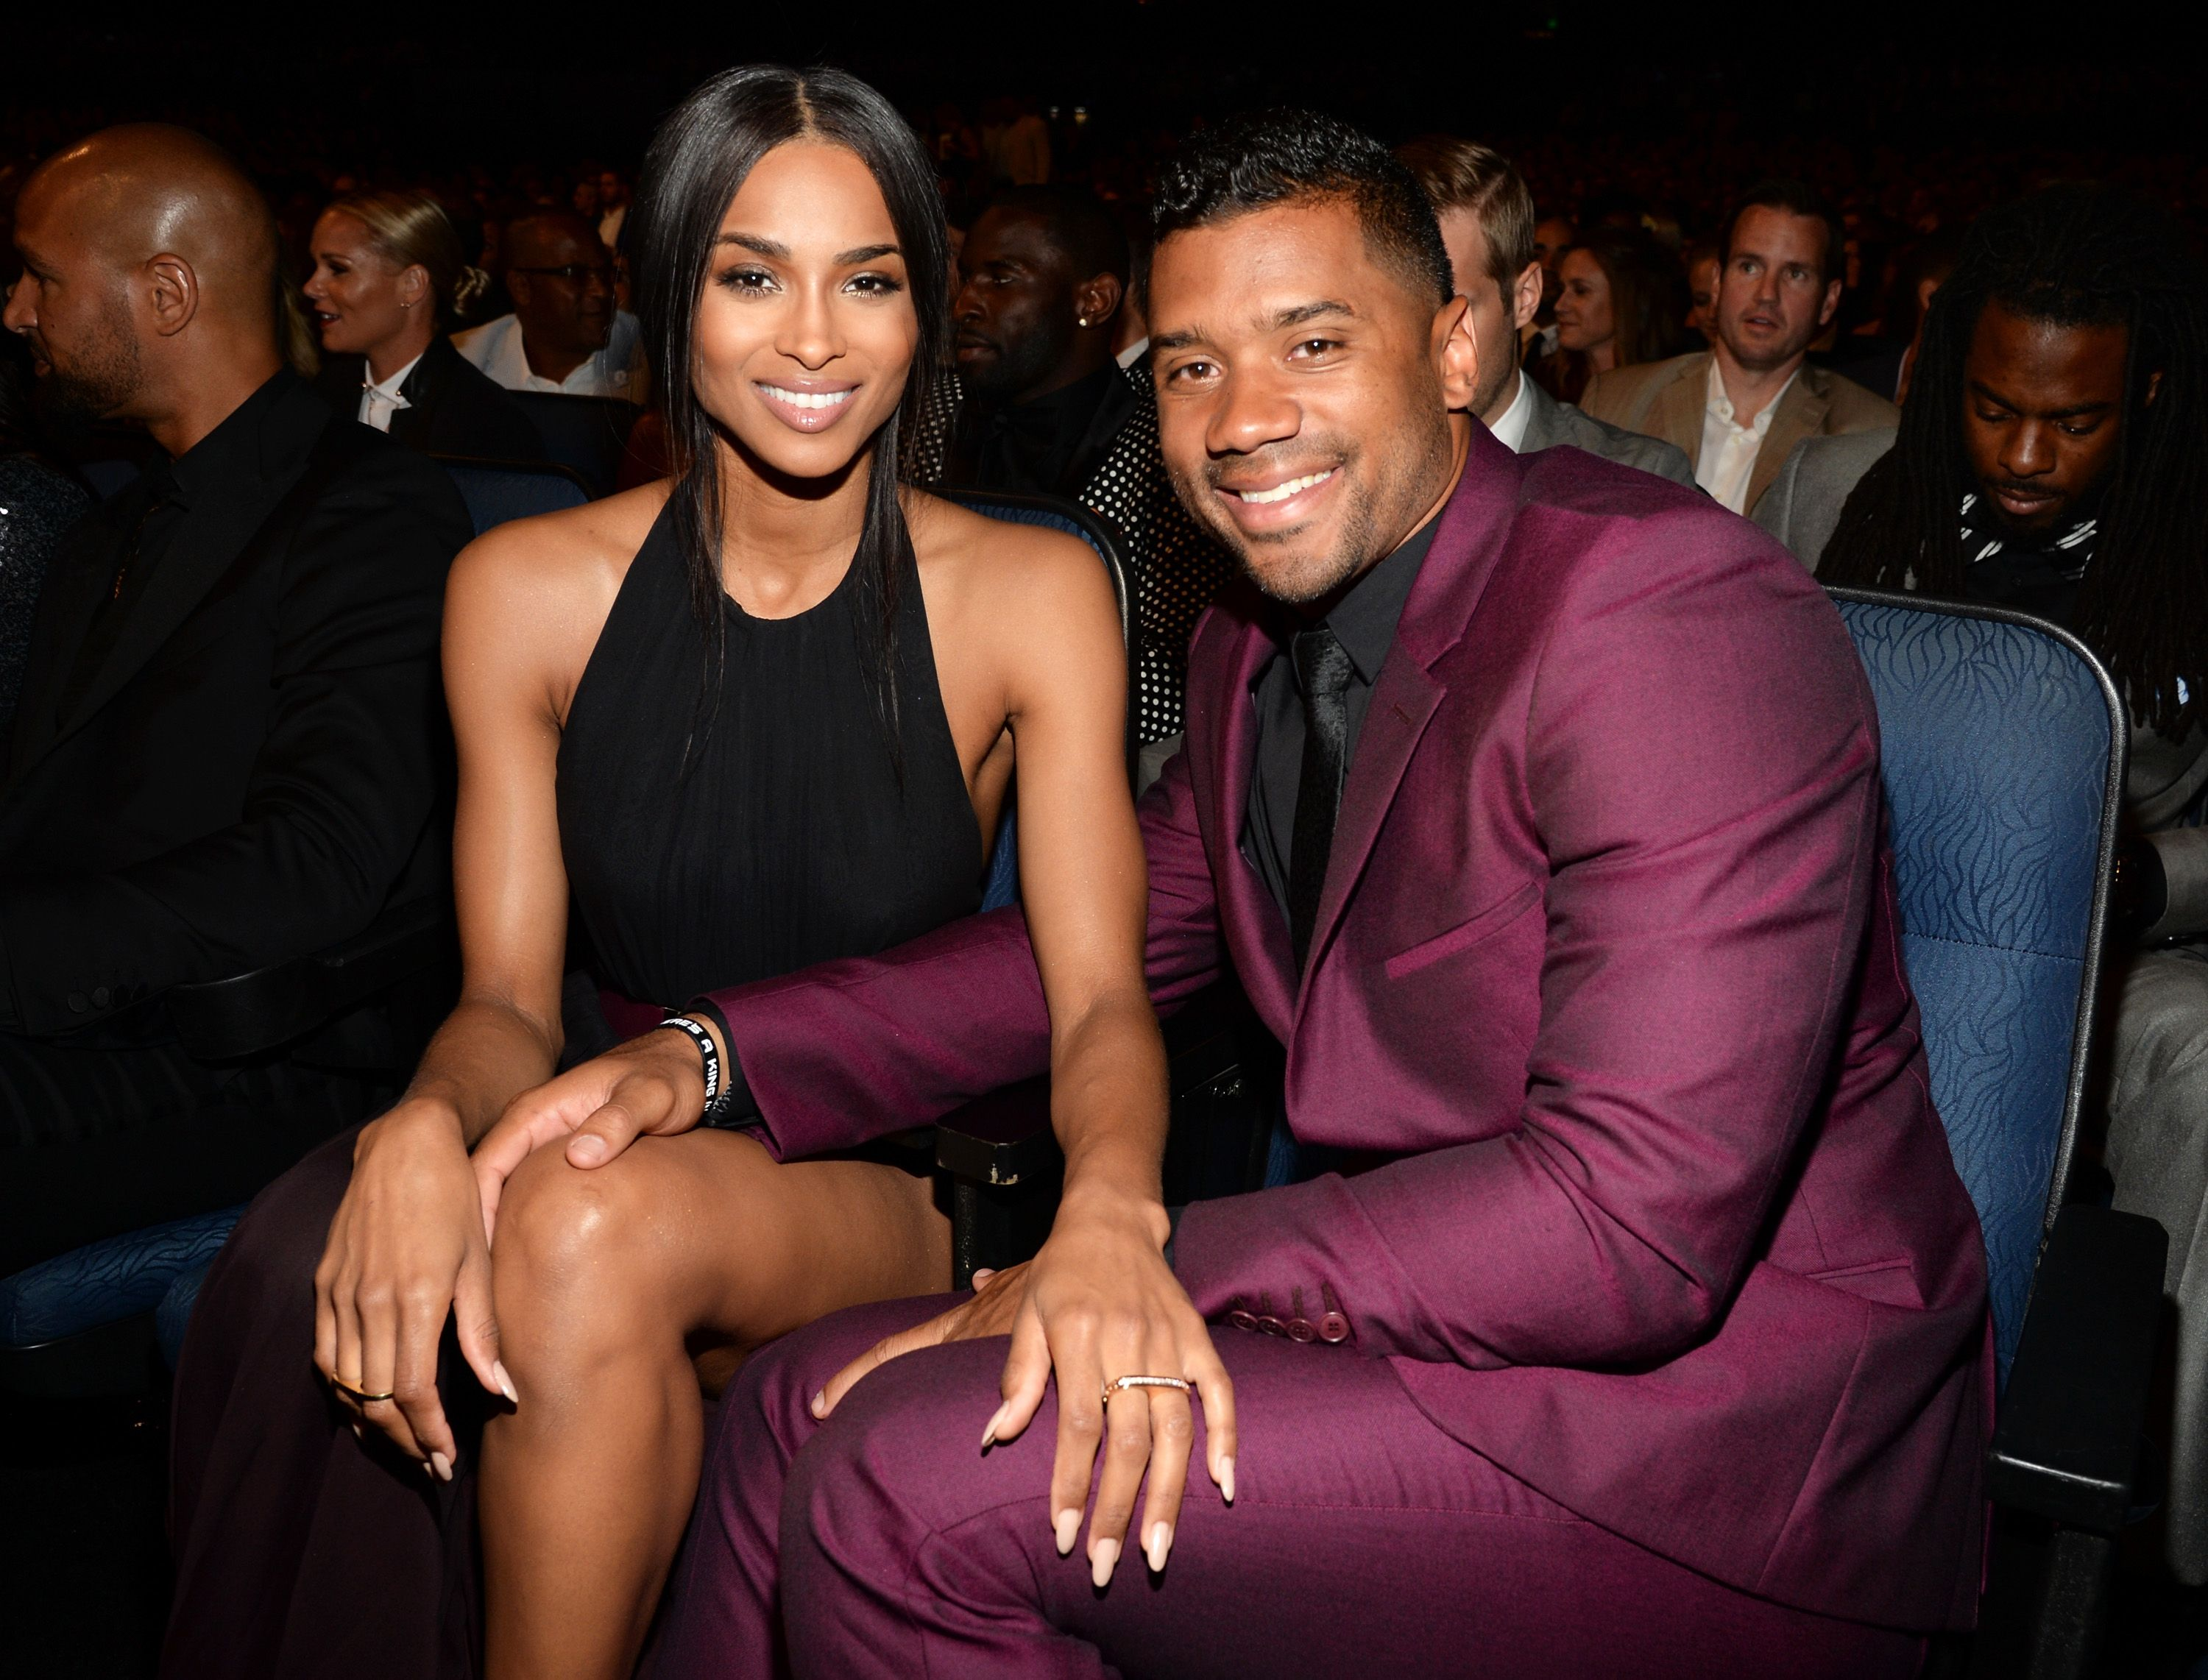 Quarterback Russell Wilson and singer Ciara attend the 2015 ESPYS at Microsoft Theater in LA, California on 15 July, 2015. | Photo: Getty Images